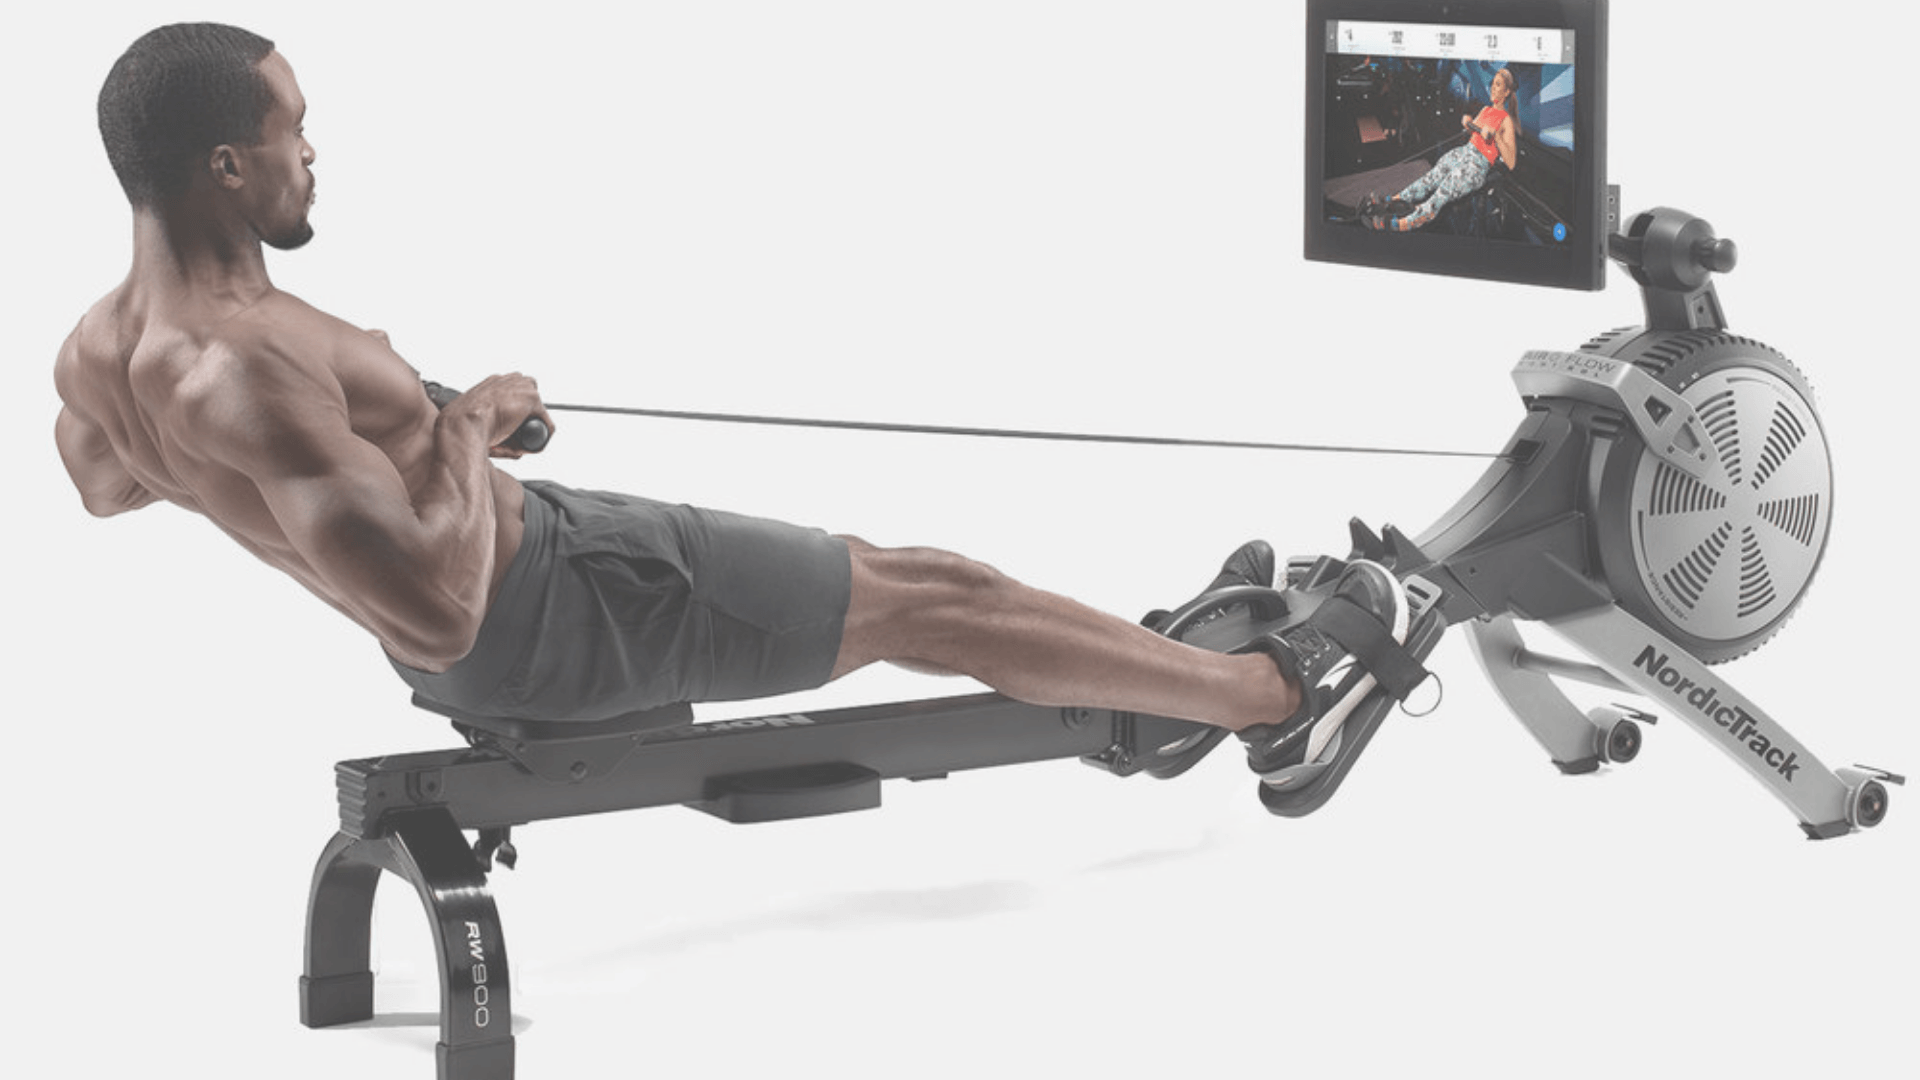 NordicTrack Rower Home Gym